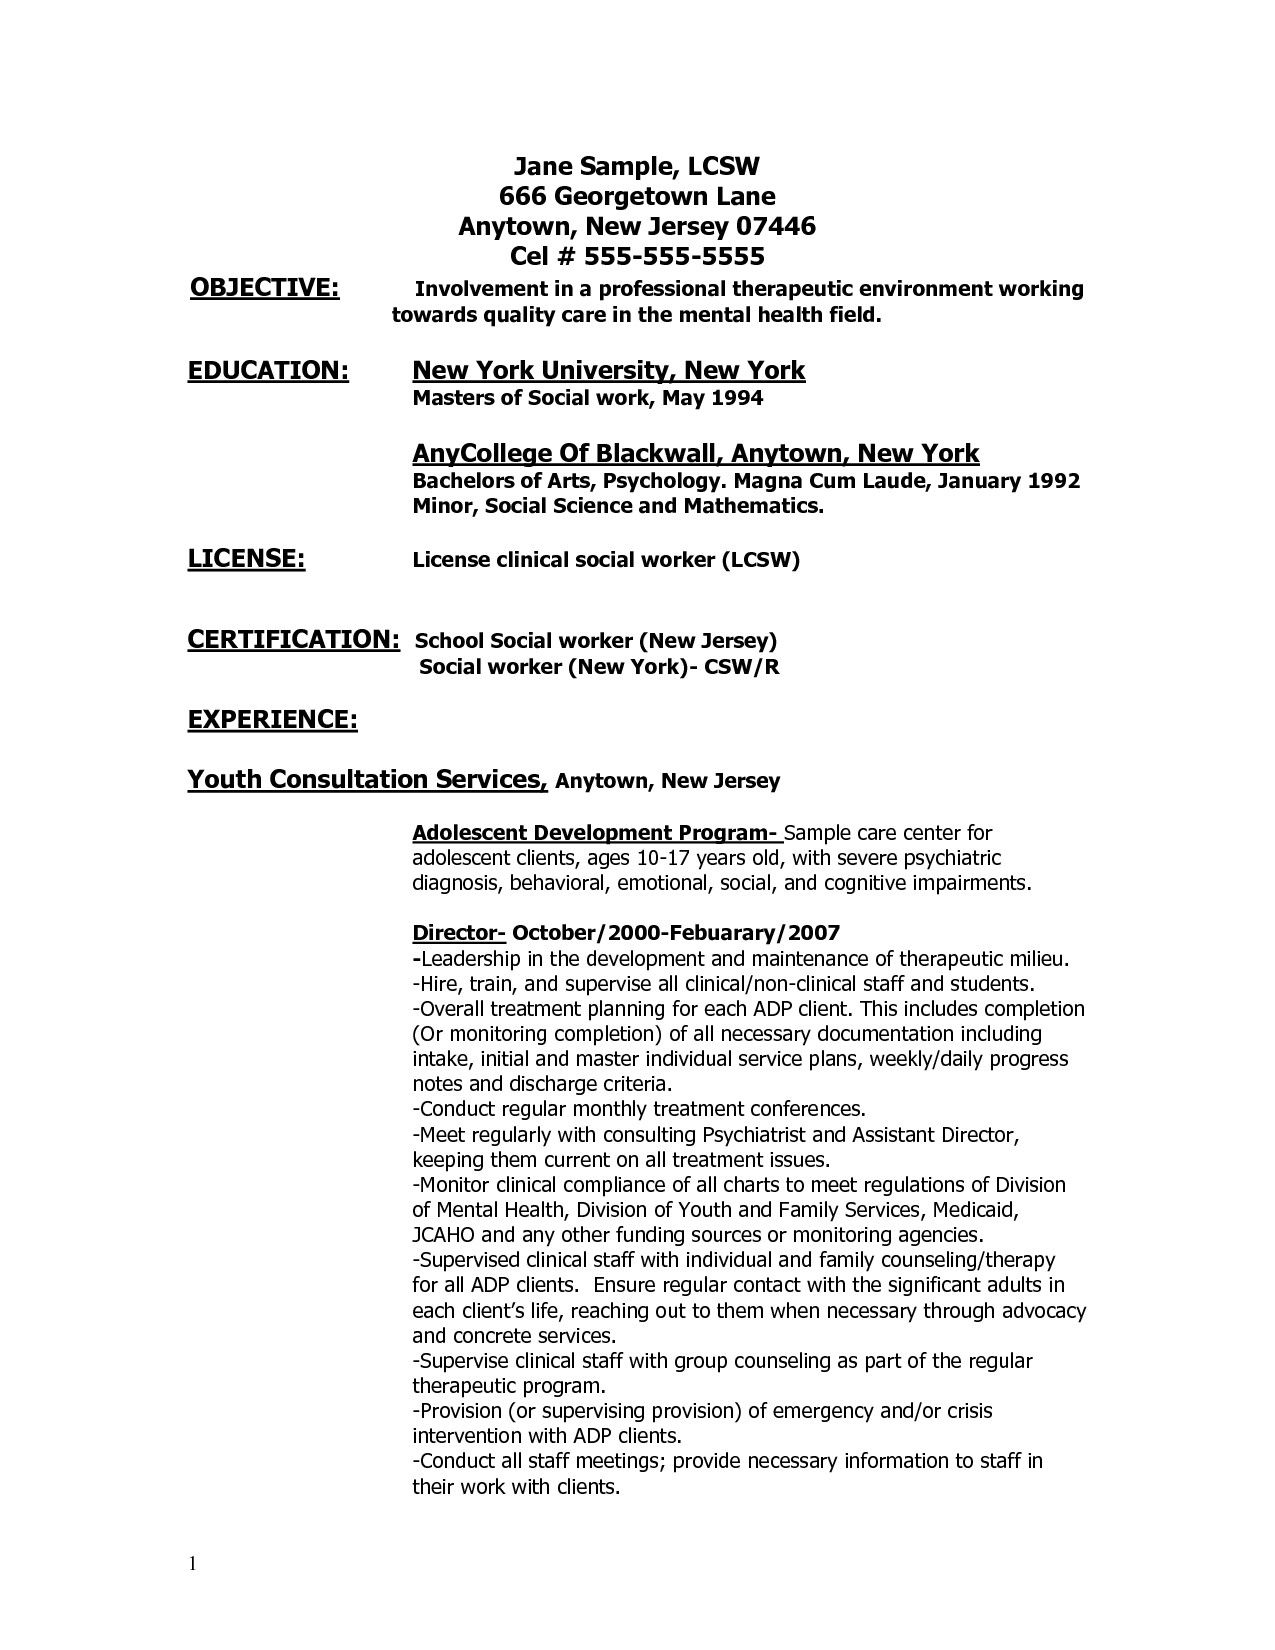 Resume Objective Examples For Graduate